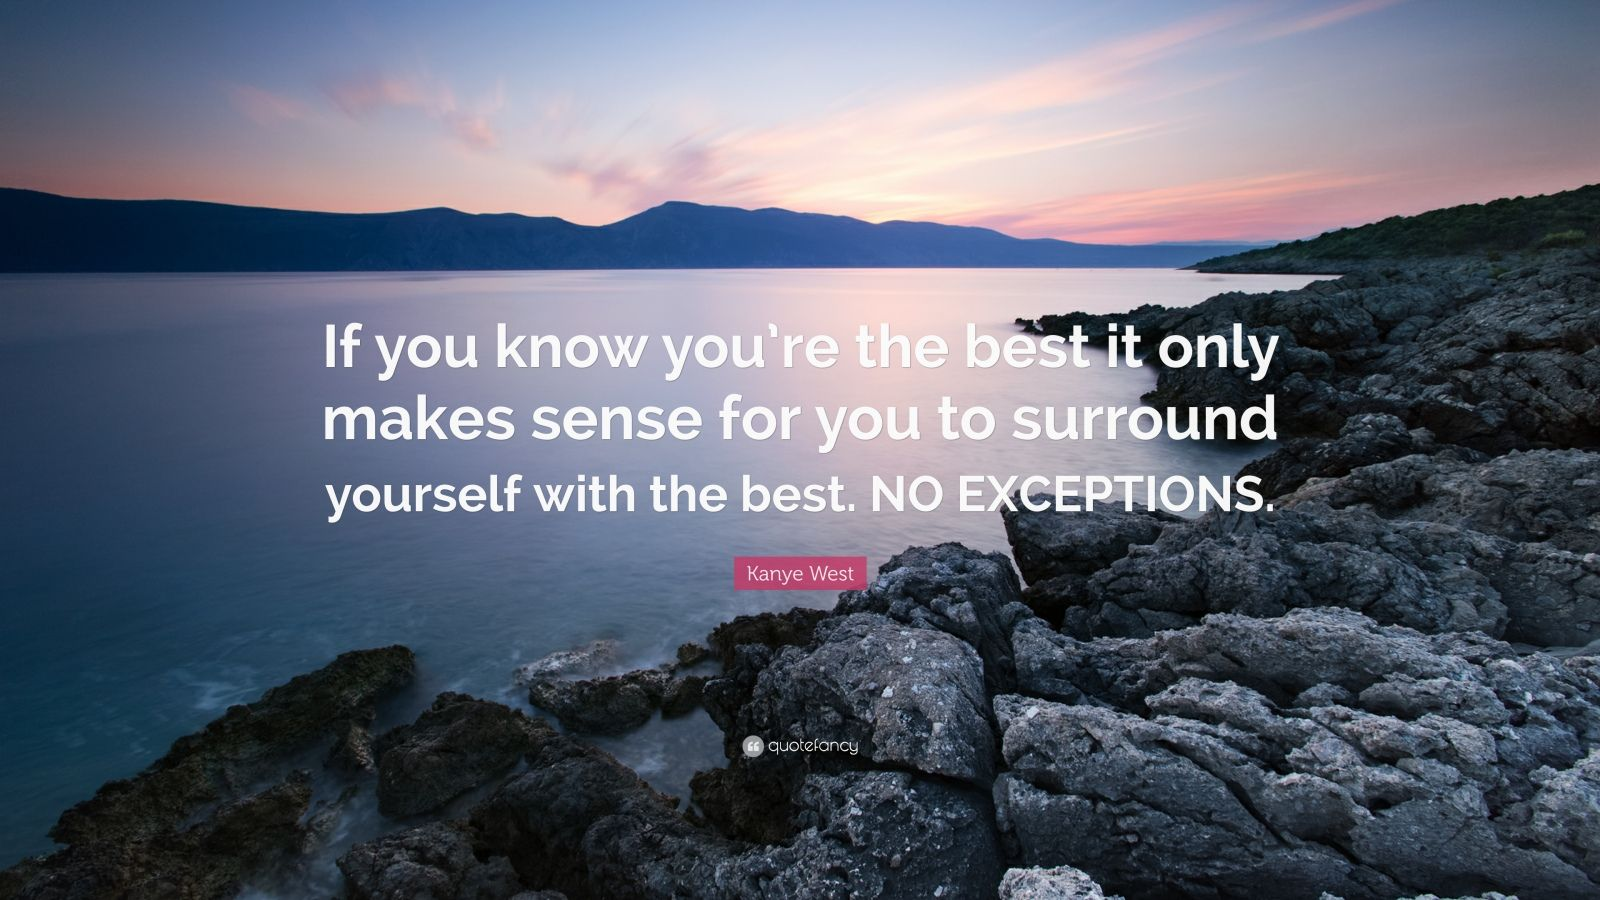 """Kanye West Quote: """"If you know you're the best it only makes sense for you to surround yourself with the best. NO EXCEPTIONS."""""""